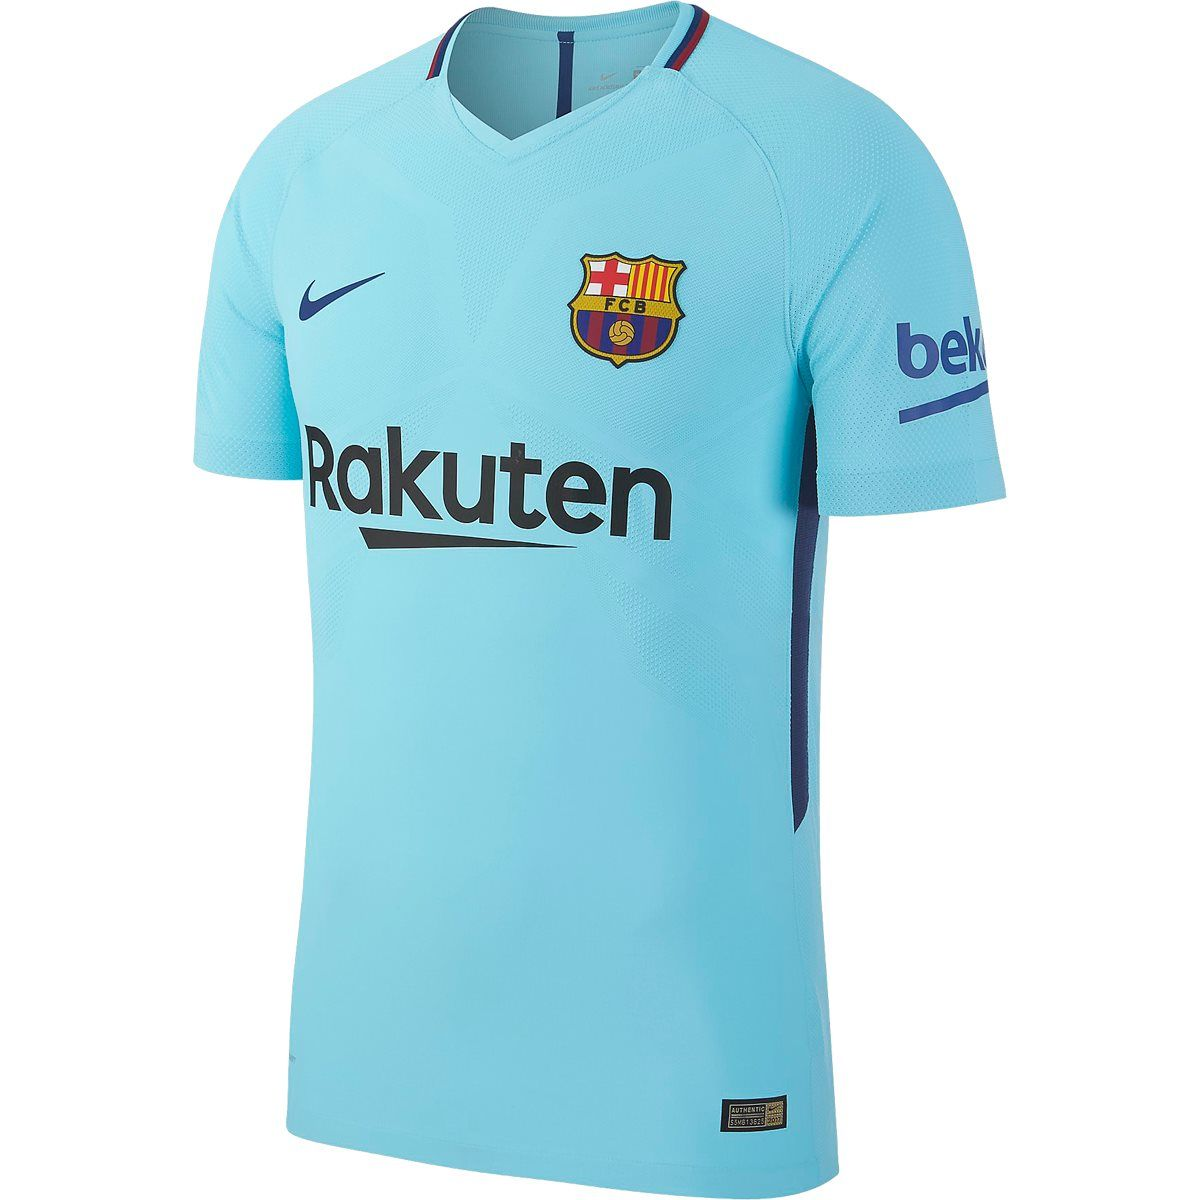 077d93a8365 Nike Barcelona Away Jersey 17/18 | Launches: Kits and Jerseys ...